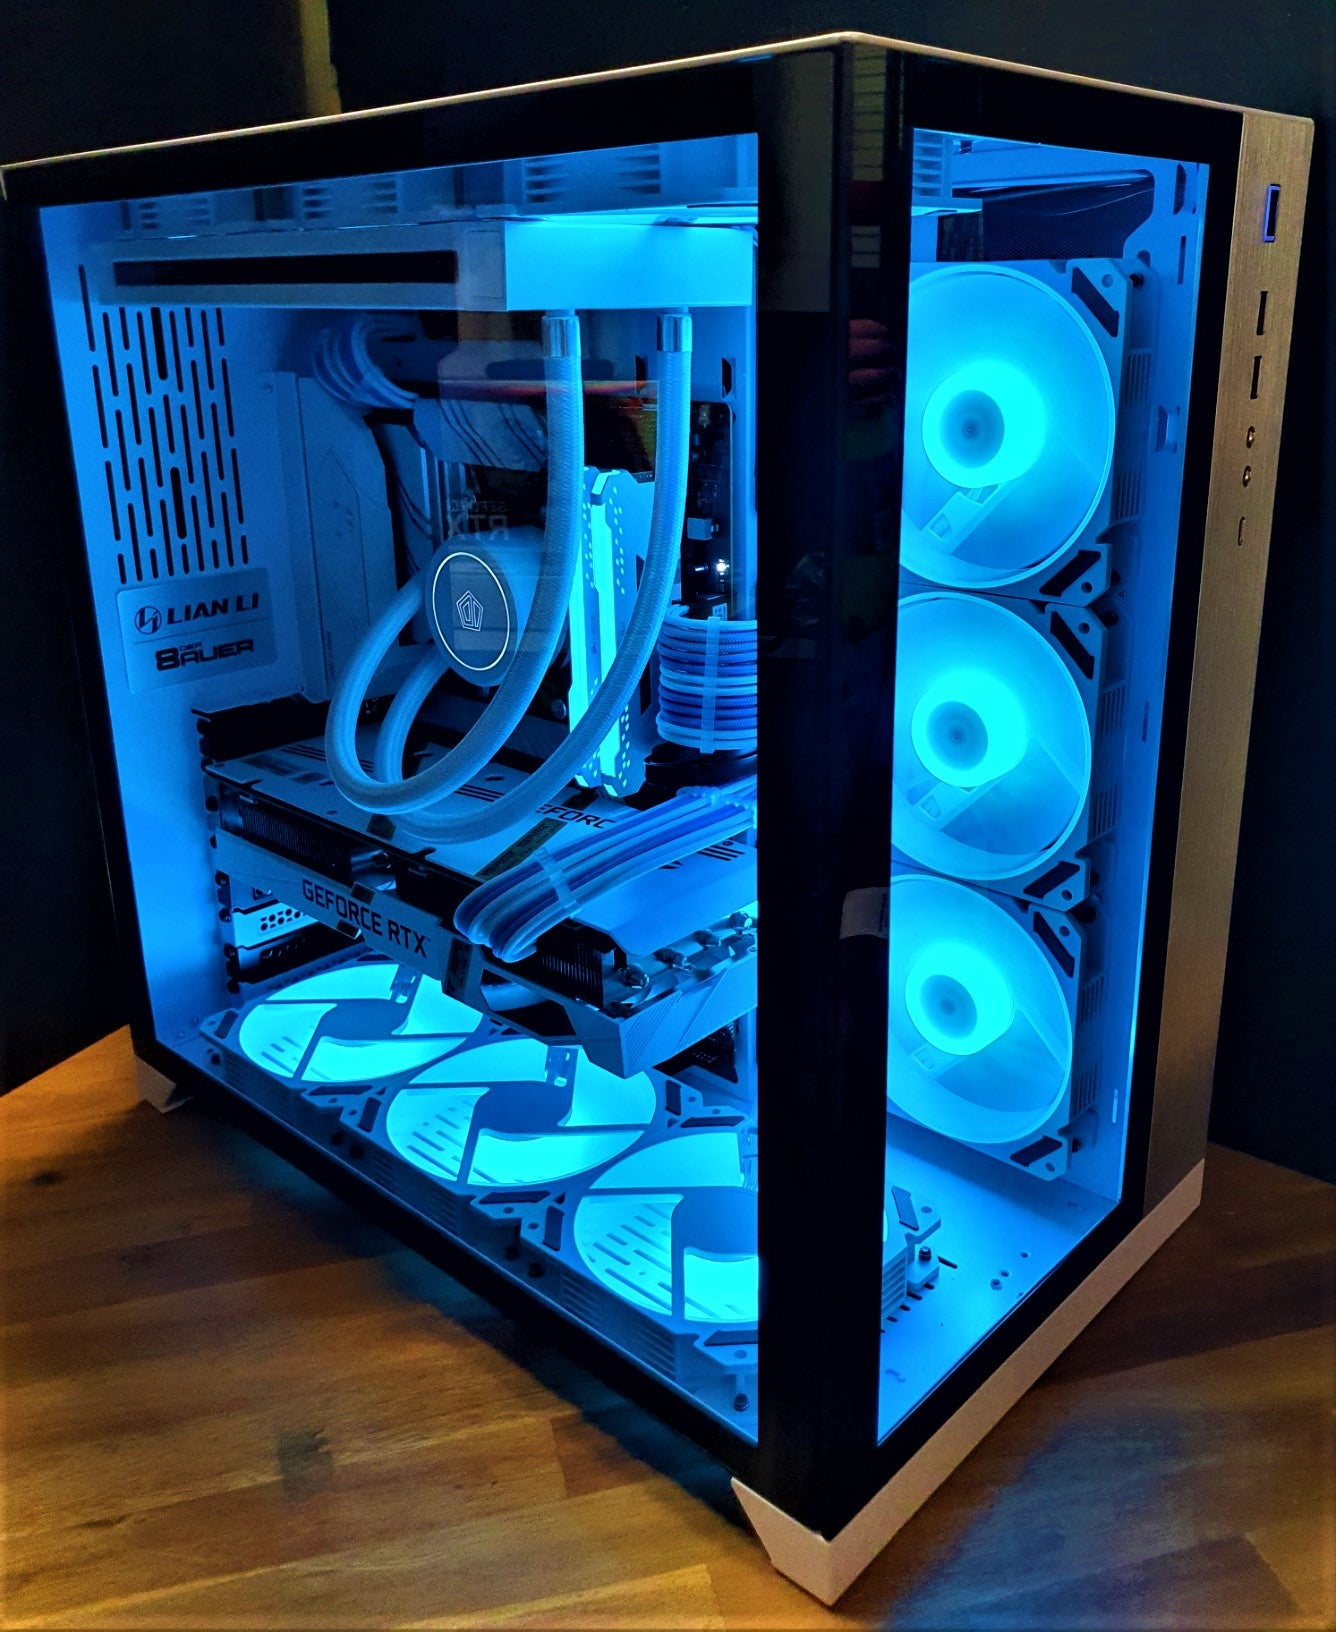 GAMING PC | Ryzen 3600 | rtx 3060 | 100% Brand New | 24mths Warranty